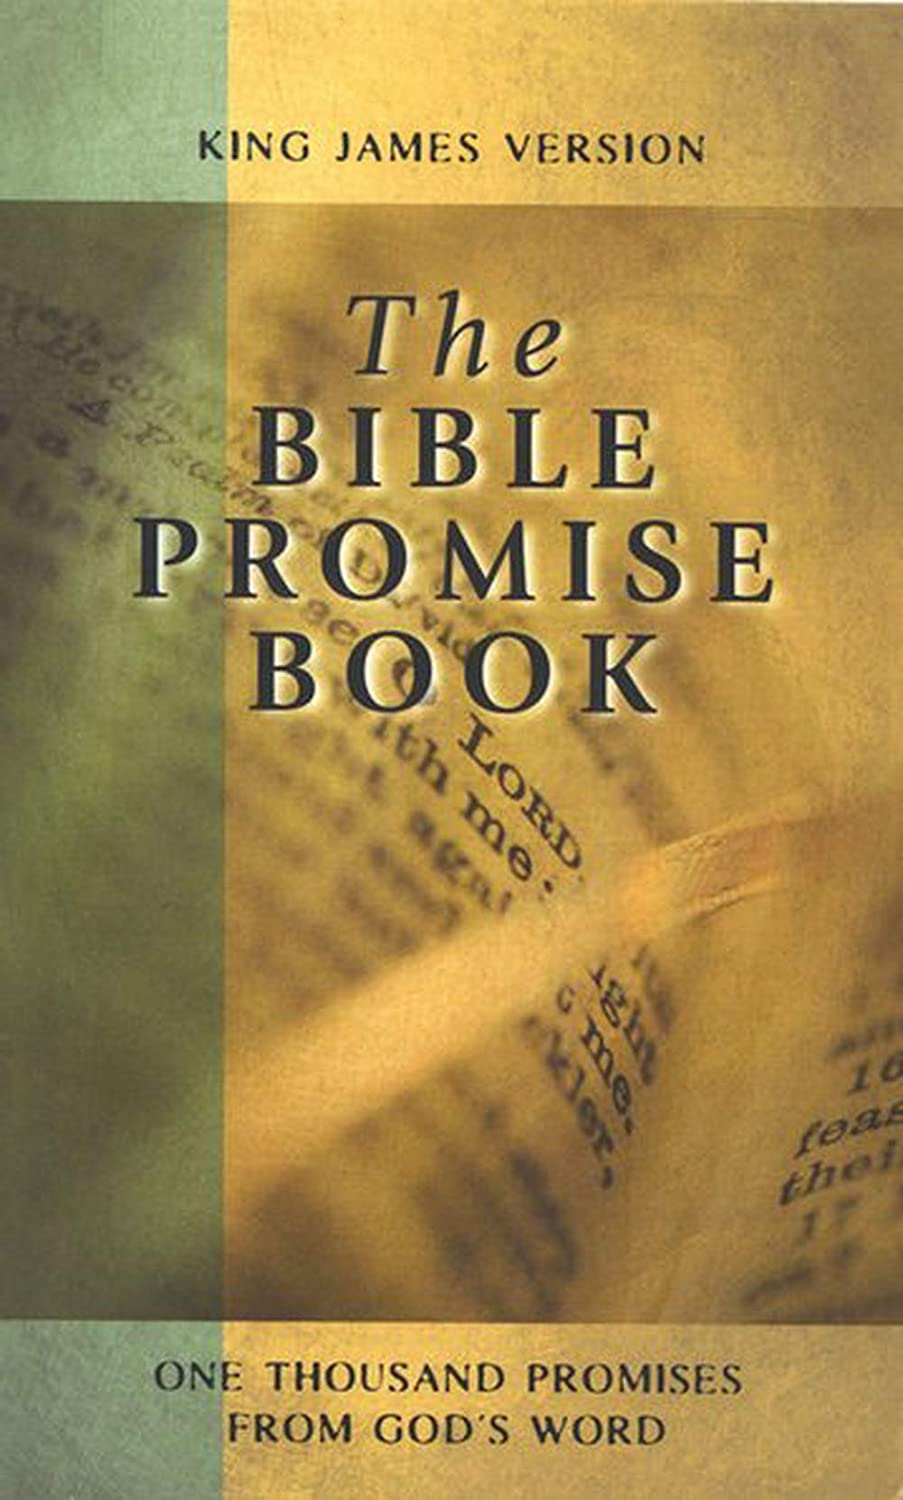 The Bible Promises Book Over One Thousand Promises from The Bible